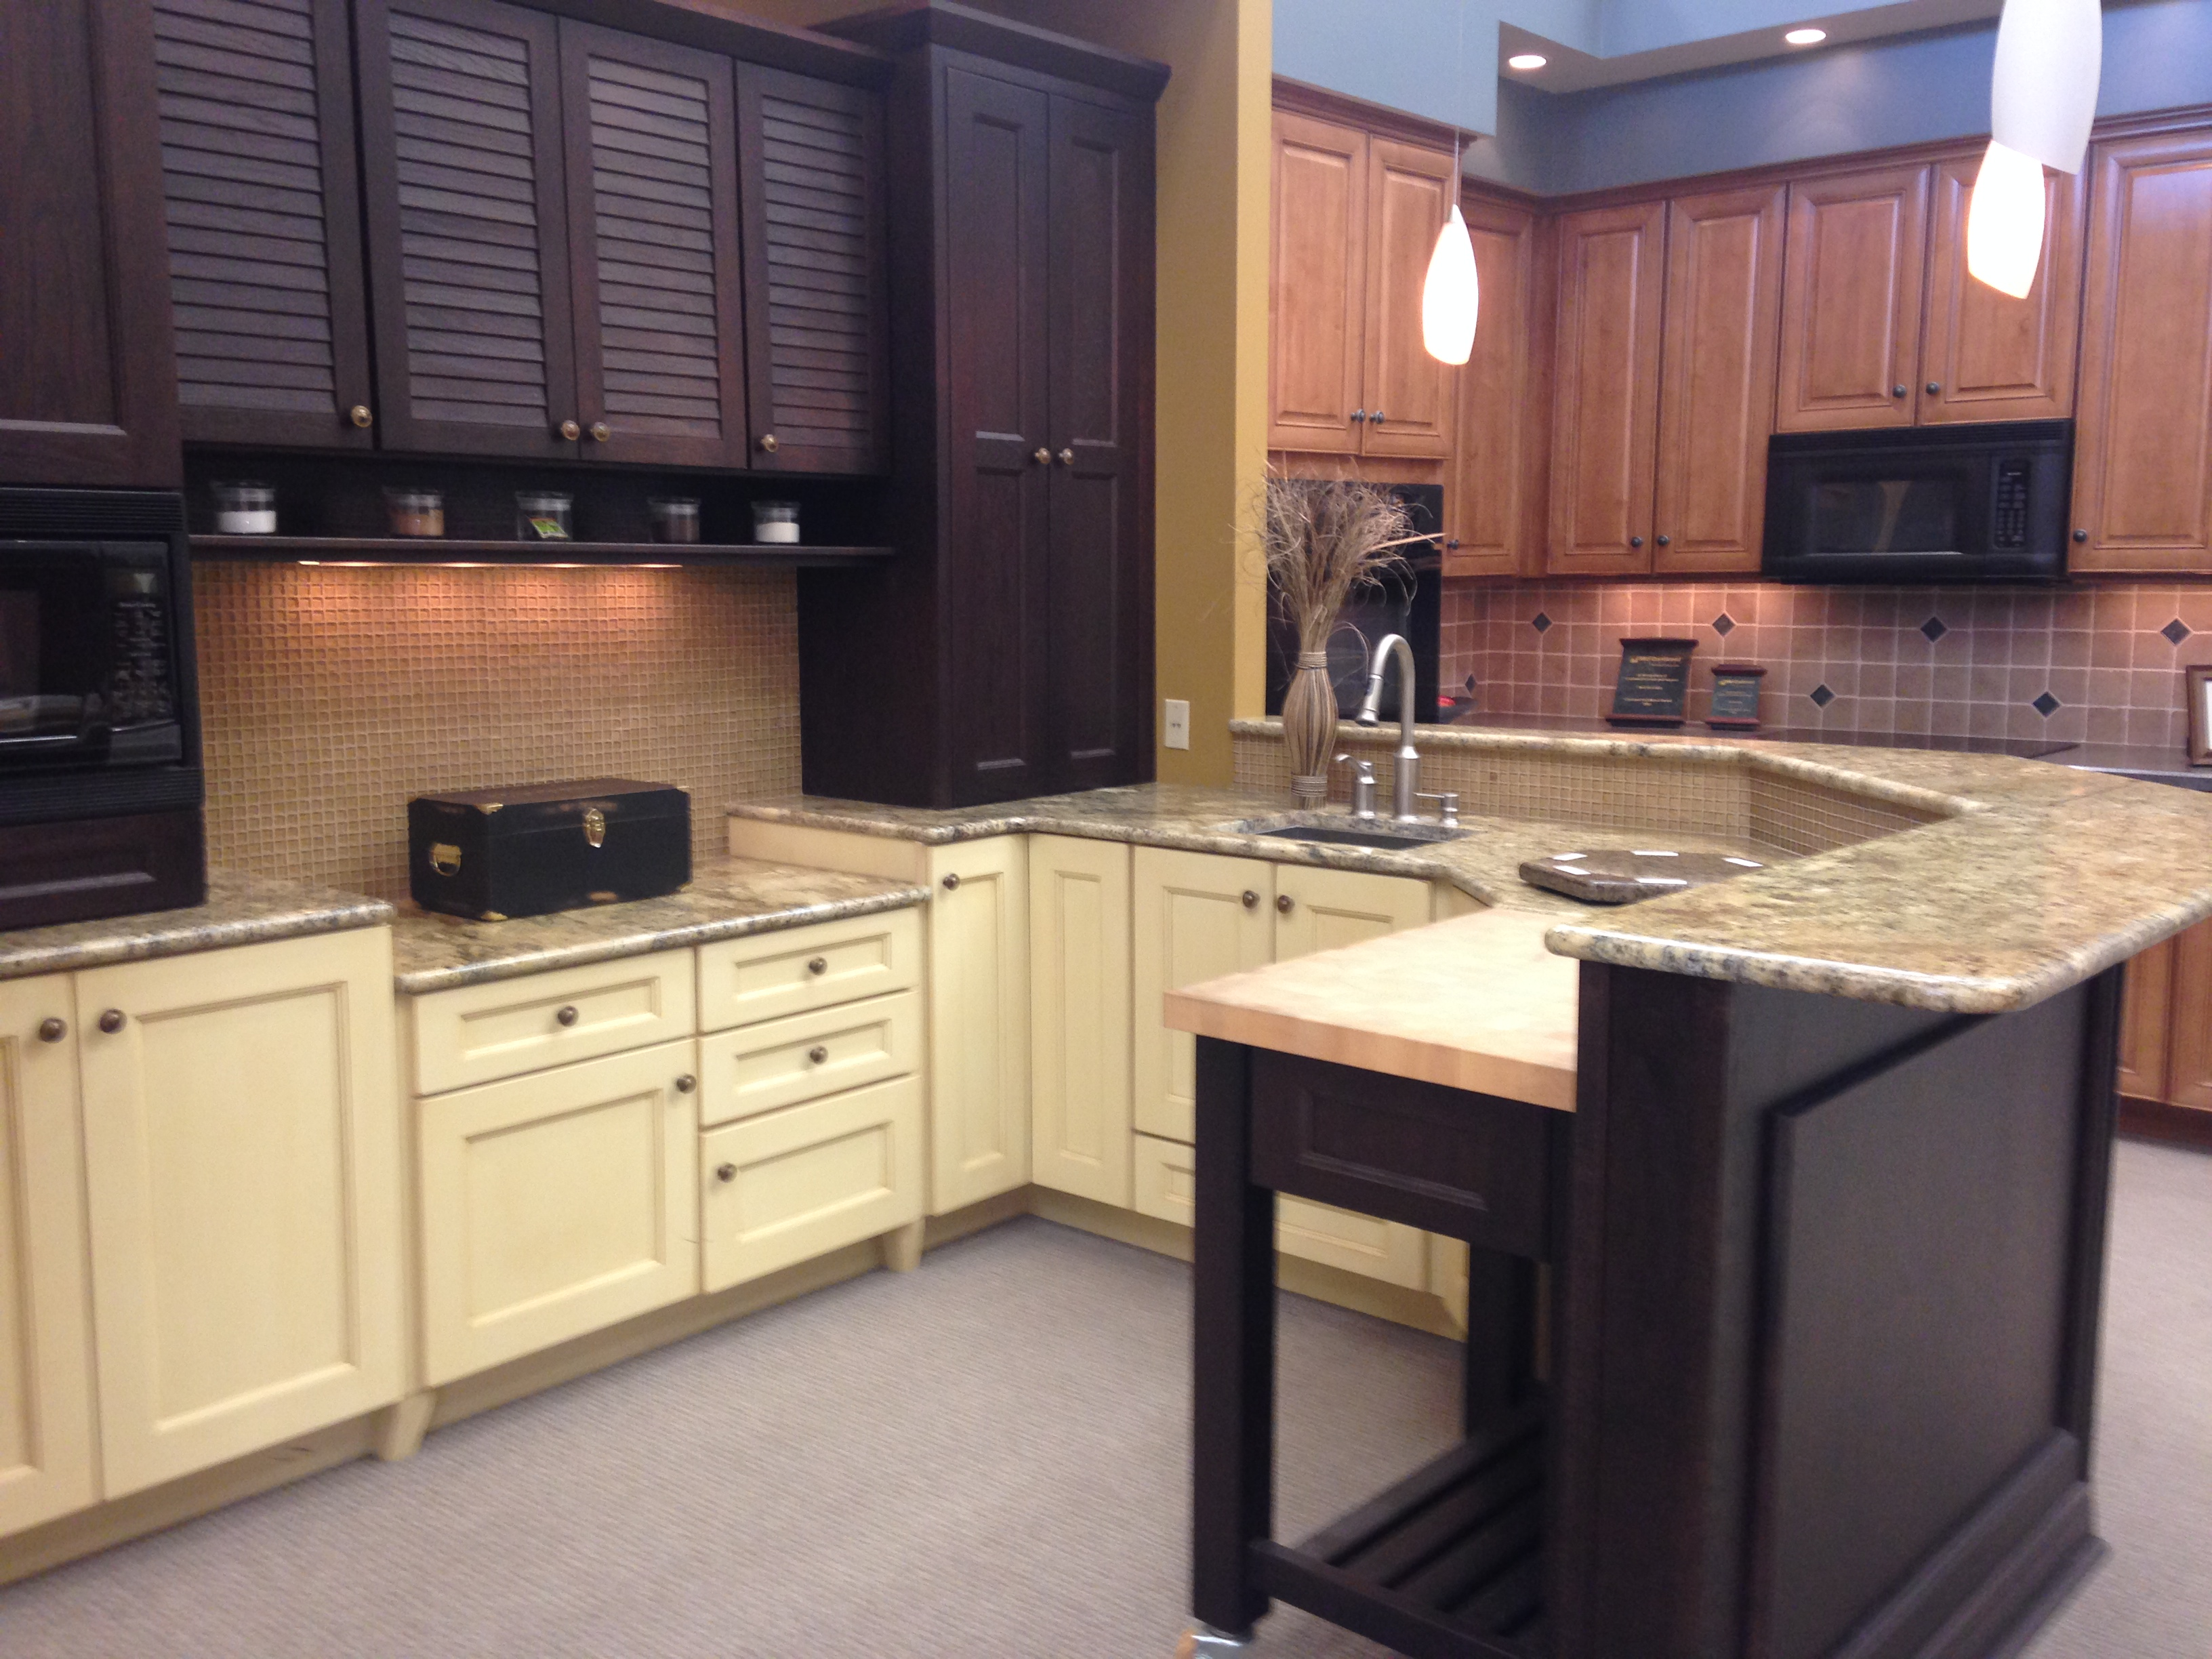 28 display kitchen cabinets for sale no 1 display for Small kitchen cabinets for sale